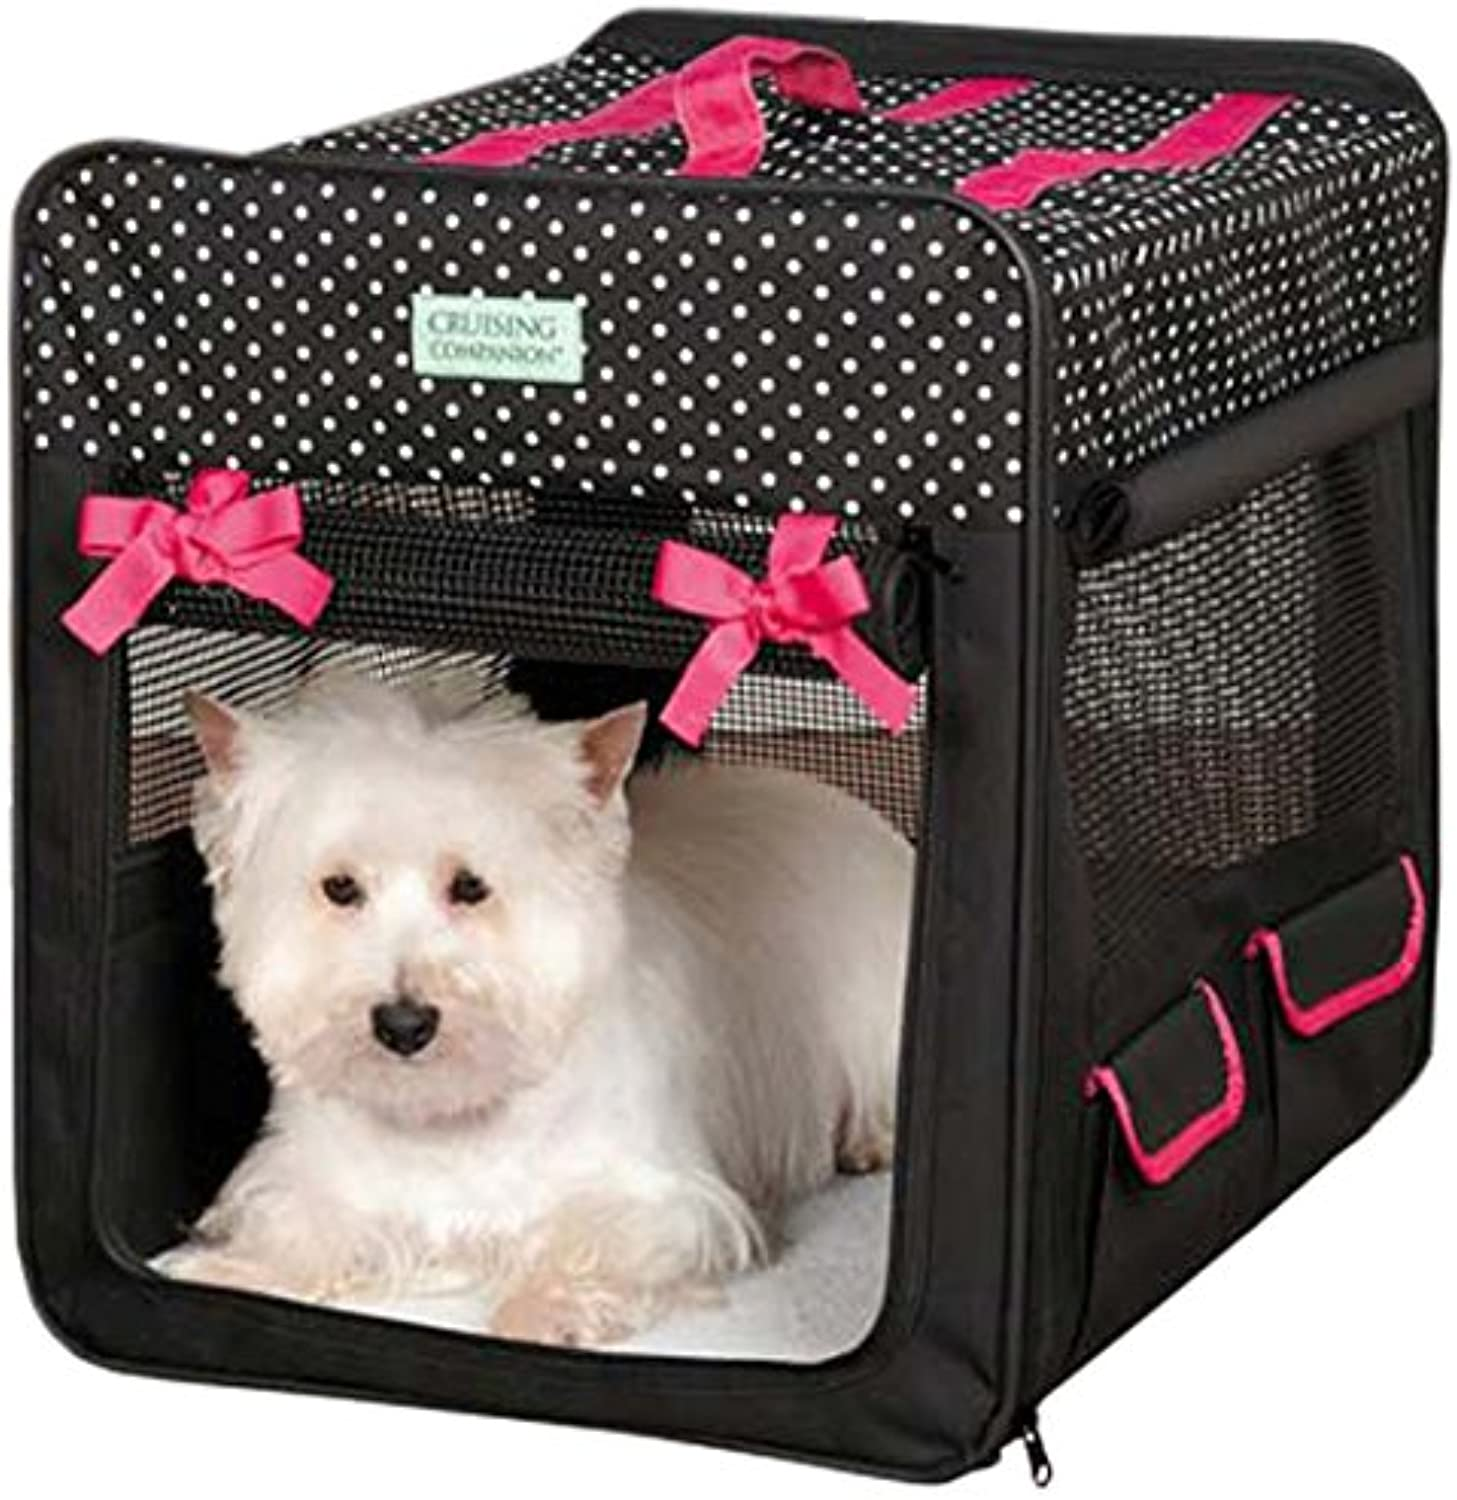 Cruising Companion Polka Dot Collapsible Dog Crate, Small, Black